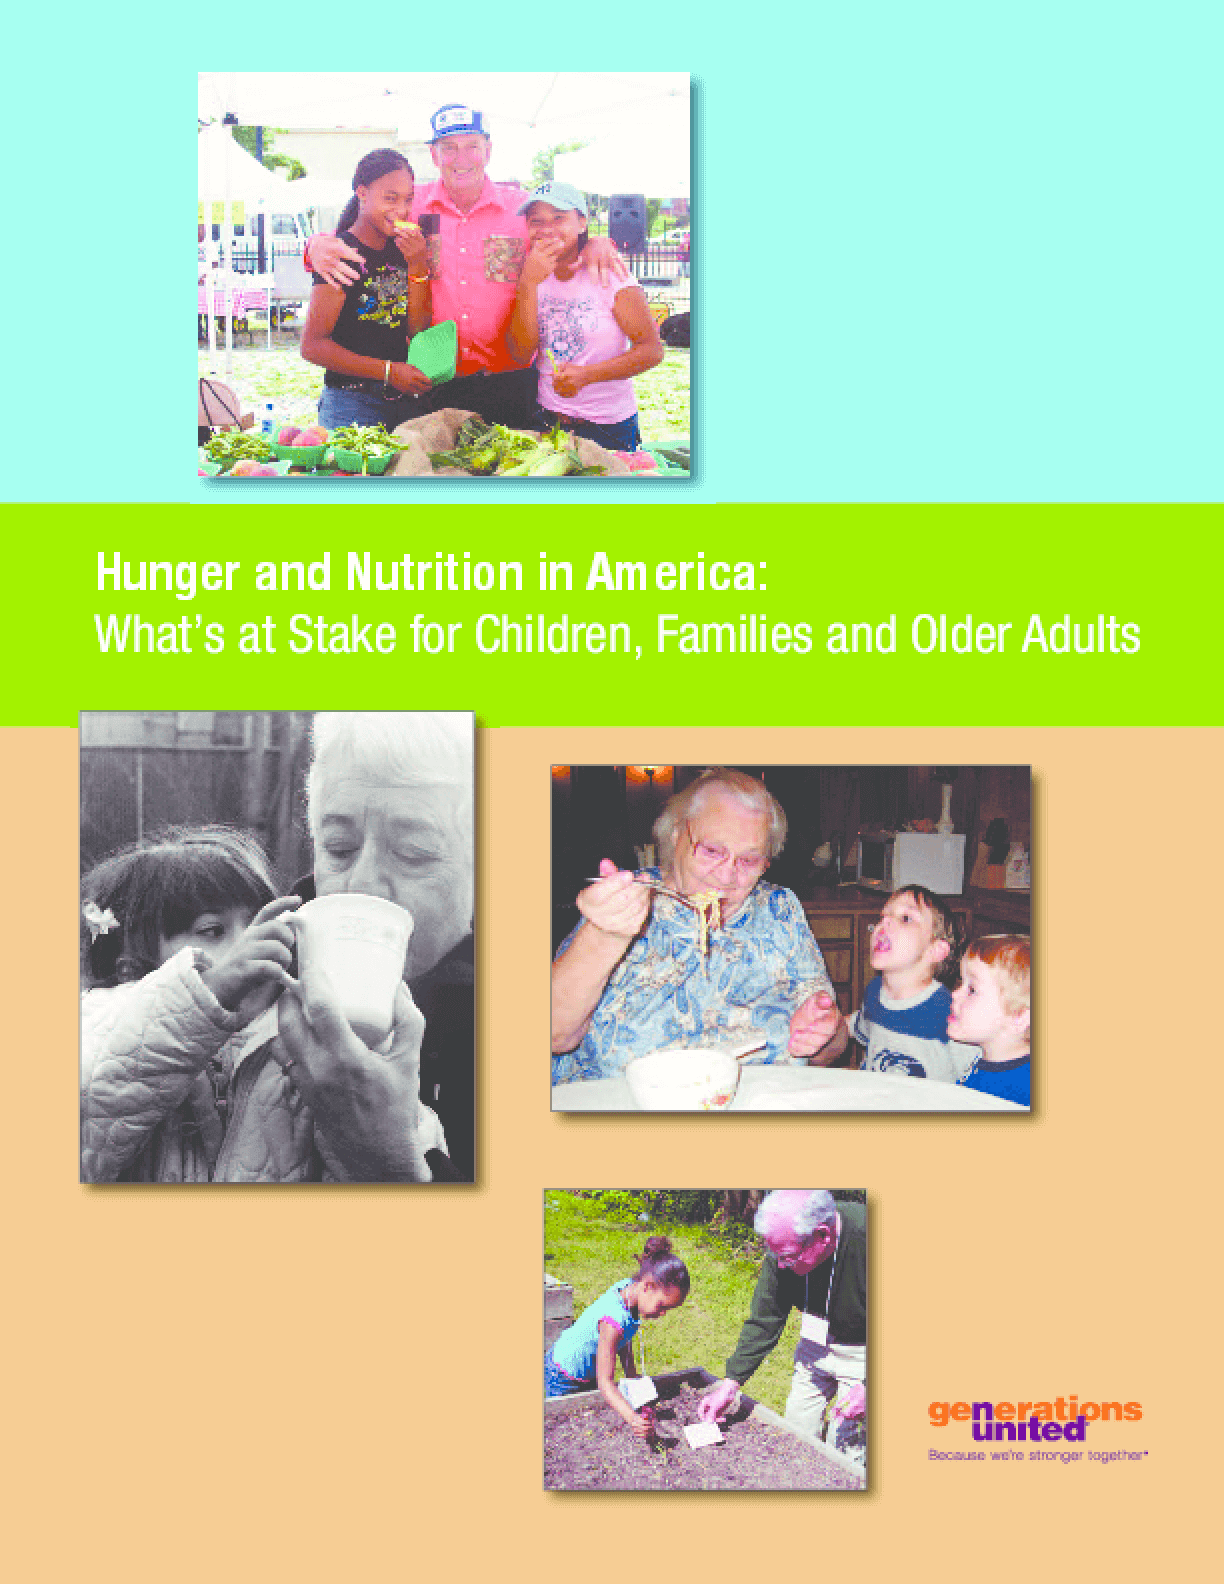 Hunger and Nutrition: What's at Stake for Children, Families, and Older Adults